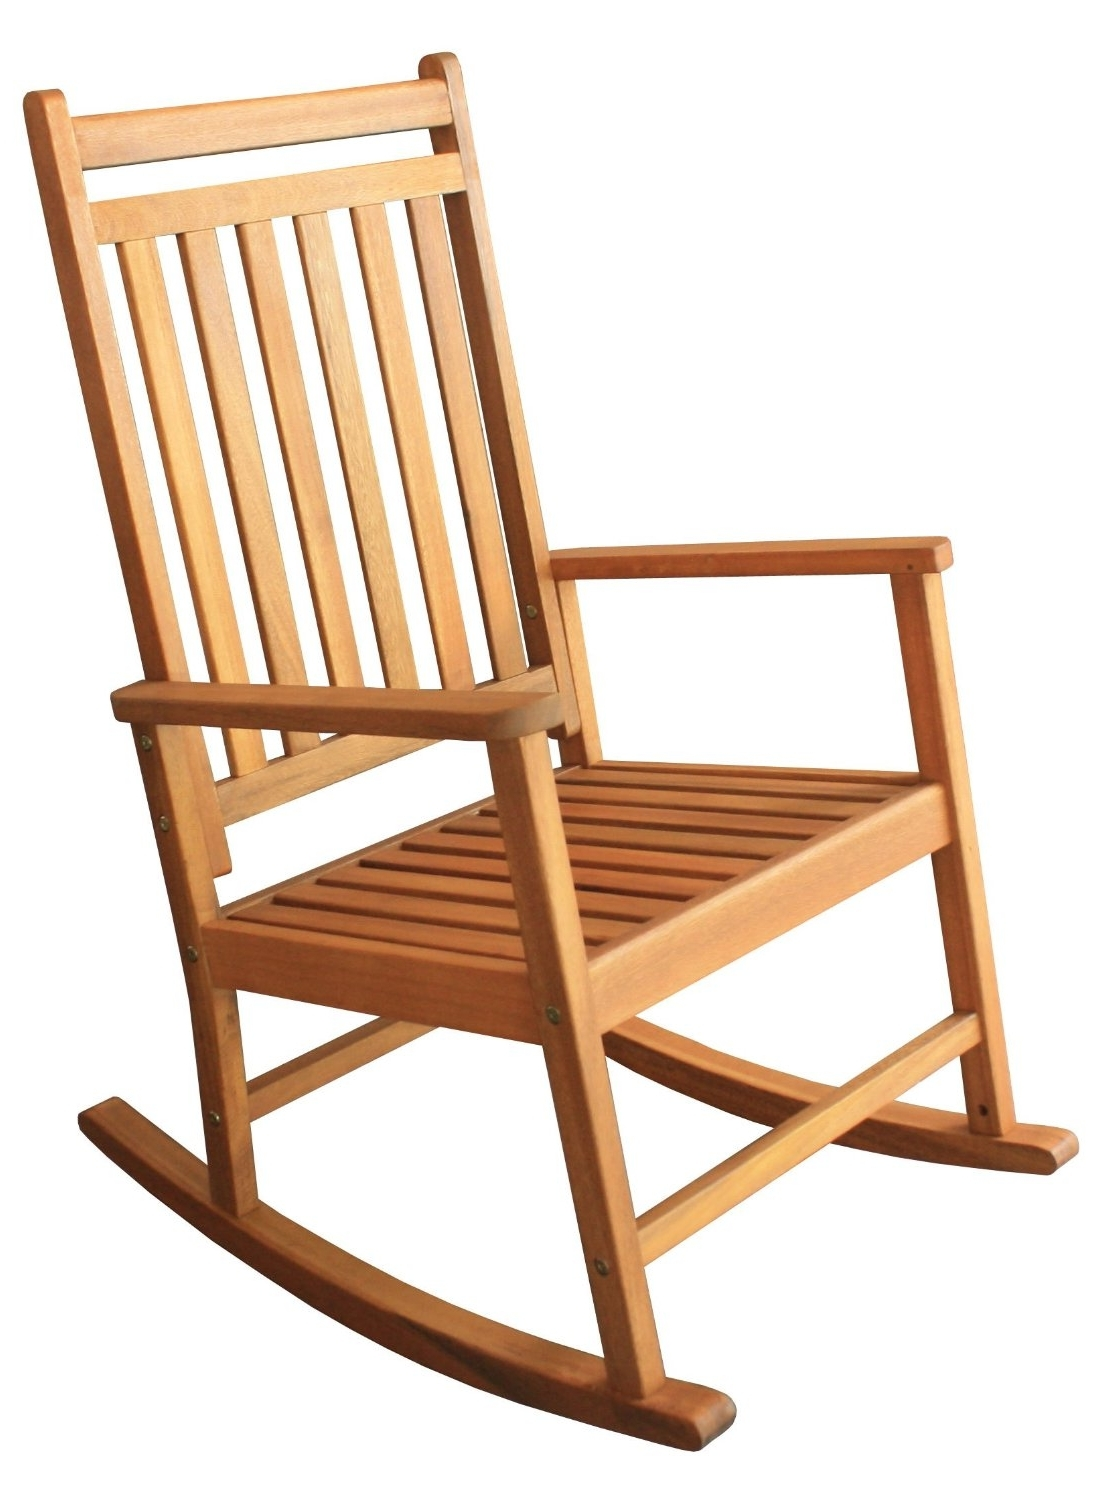 Rocking Chair Outdoor Wooden In Most Up To Date Wood Rocking Chair Images – Wood Rocking Chair Buying Considerations (View 14 of 15)